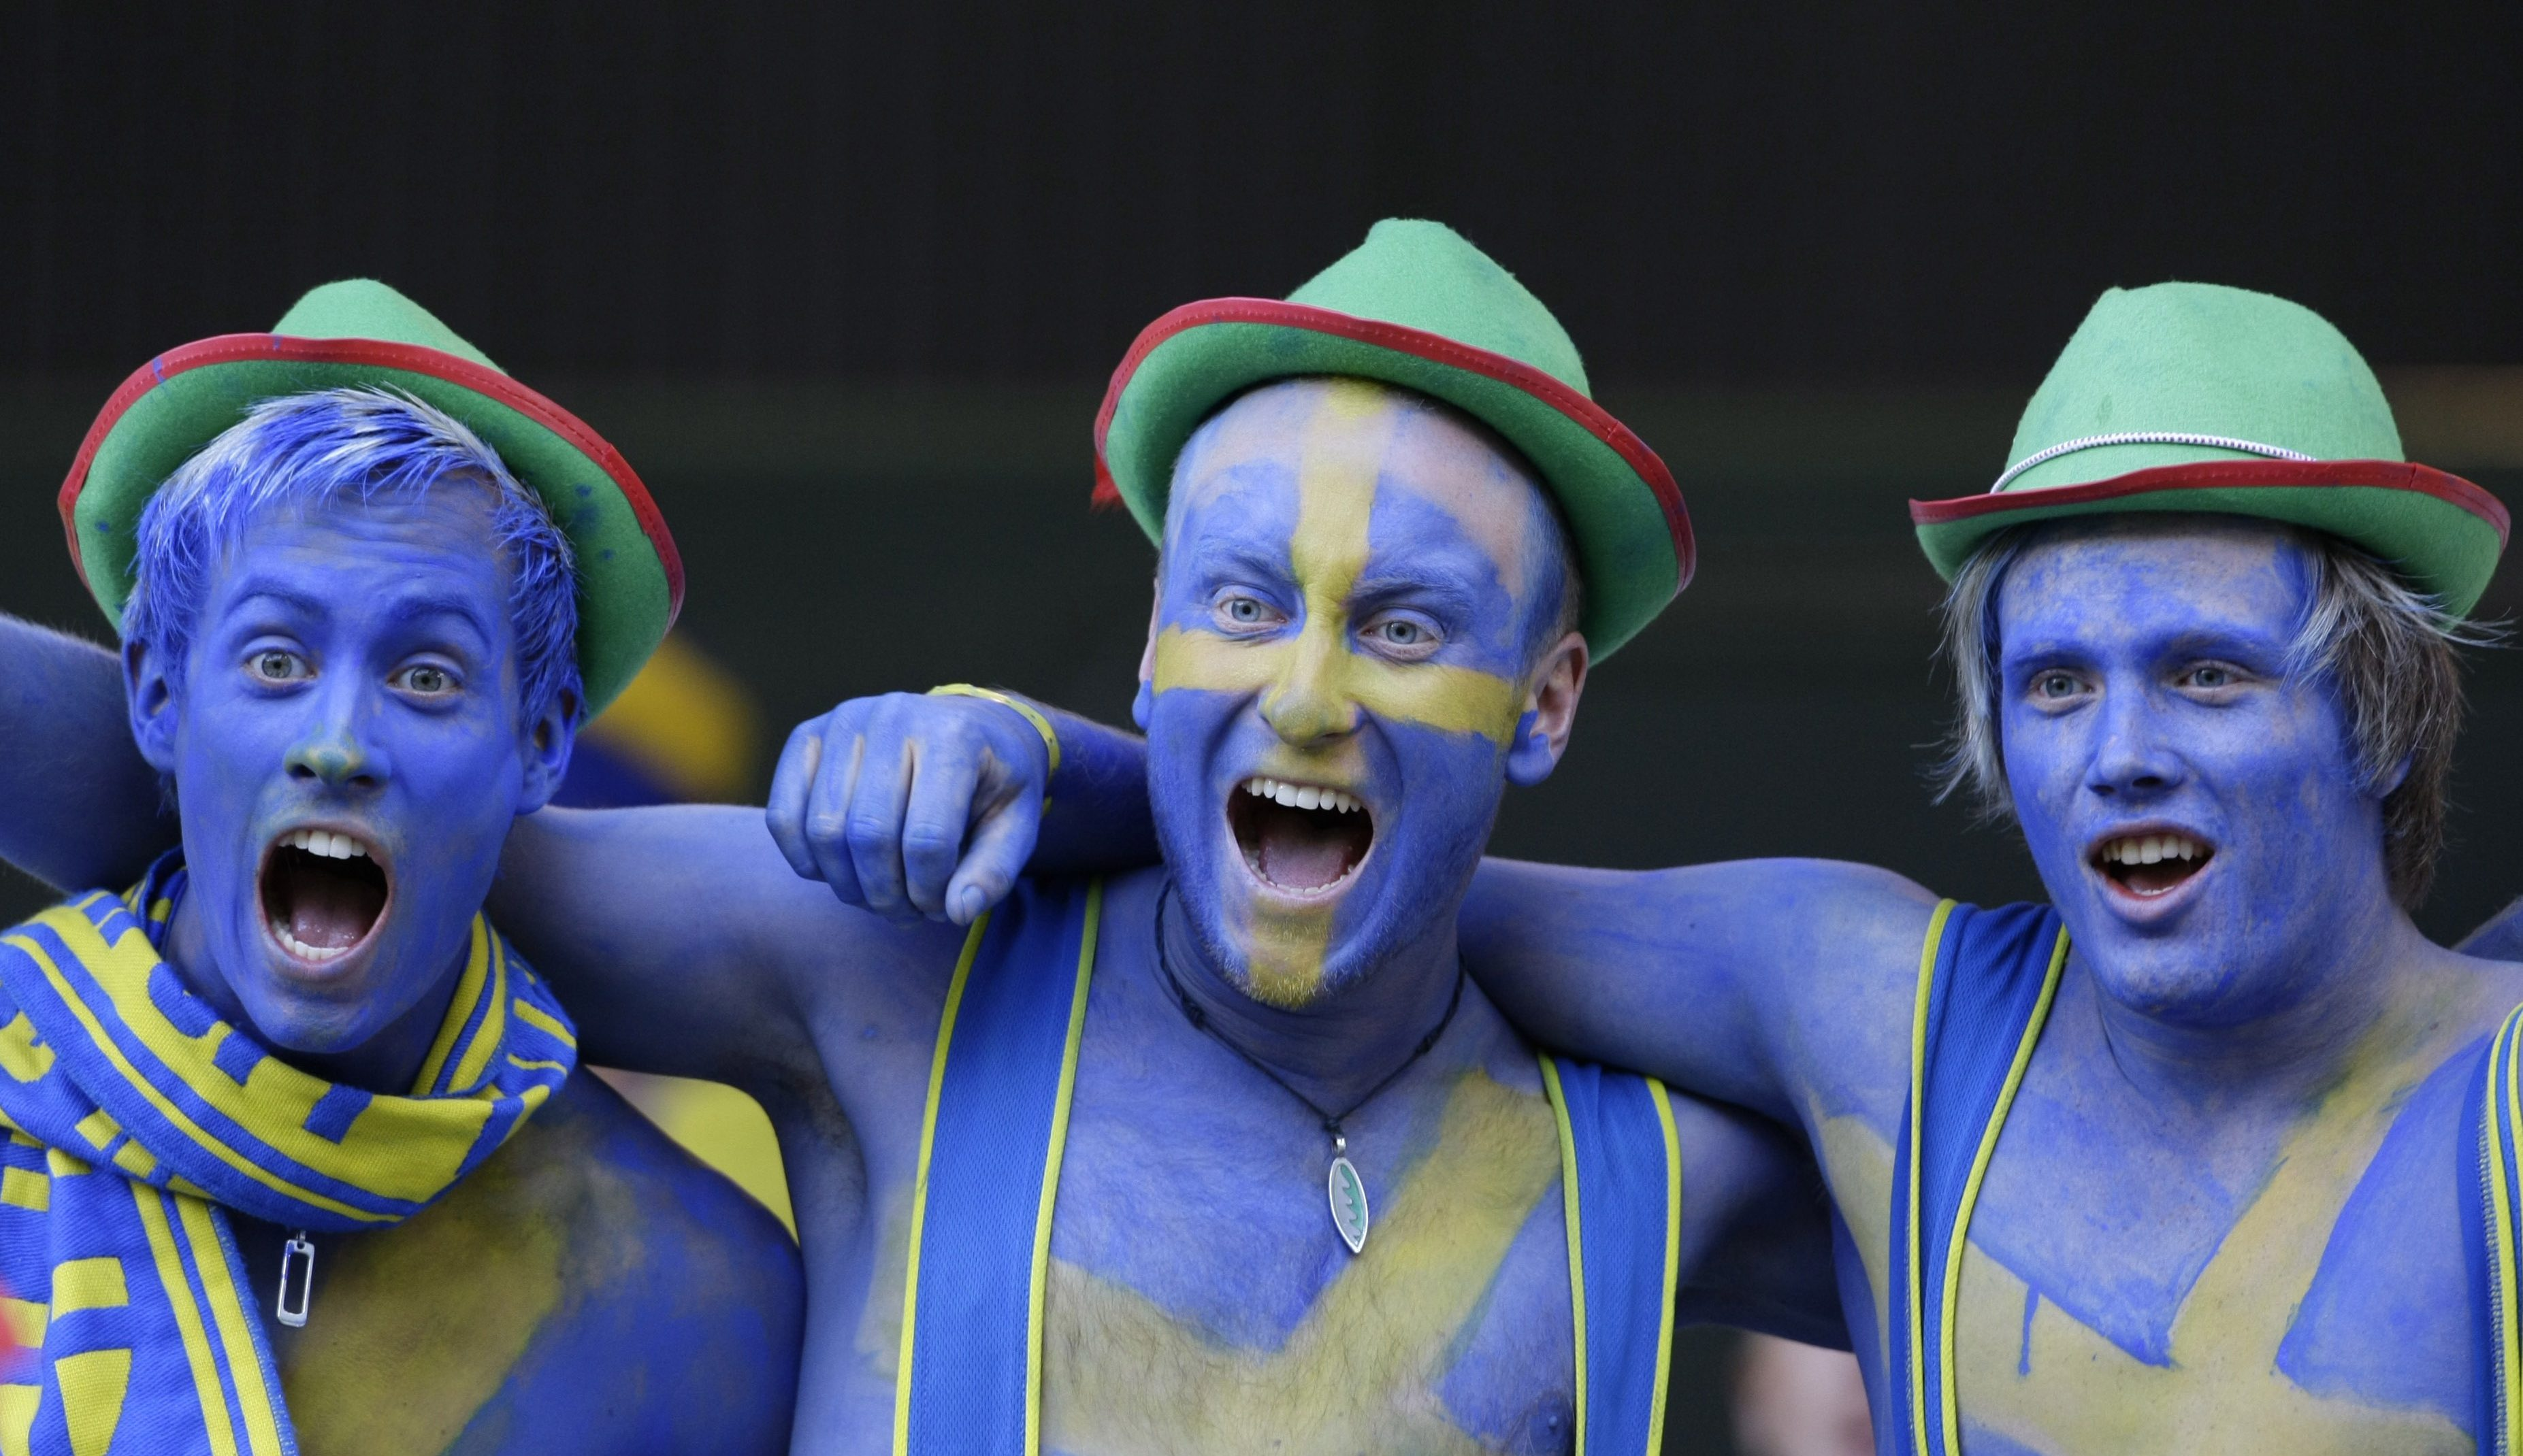 Sweden fans wait for the match against Russia during their Group D Euro 2008 soccer match at Tivoli Neu stadium in Innsbruck, June 18, 2008. REUTERS/Michaela Rehle (AUSTRIA) MOBILE OUT. EDITORIAL USE ONLY - RTX737T